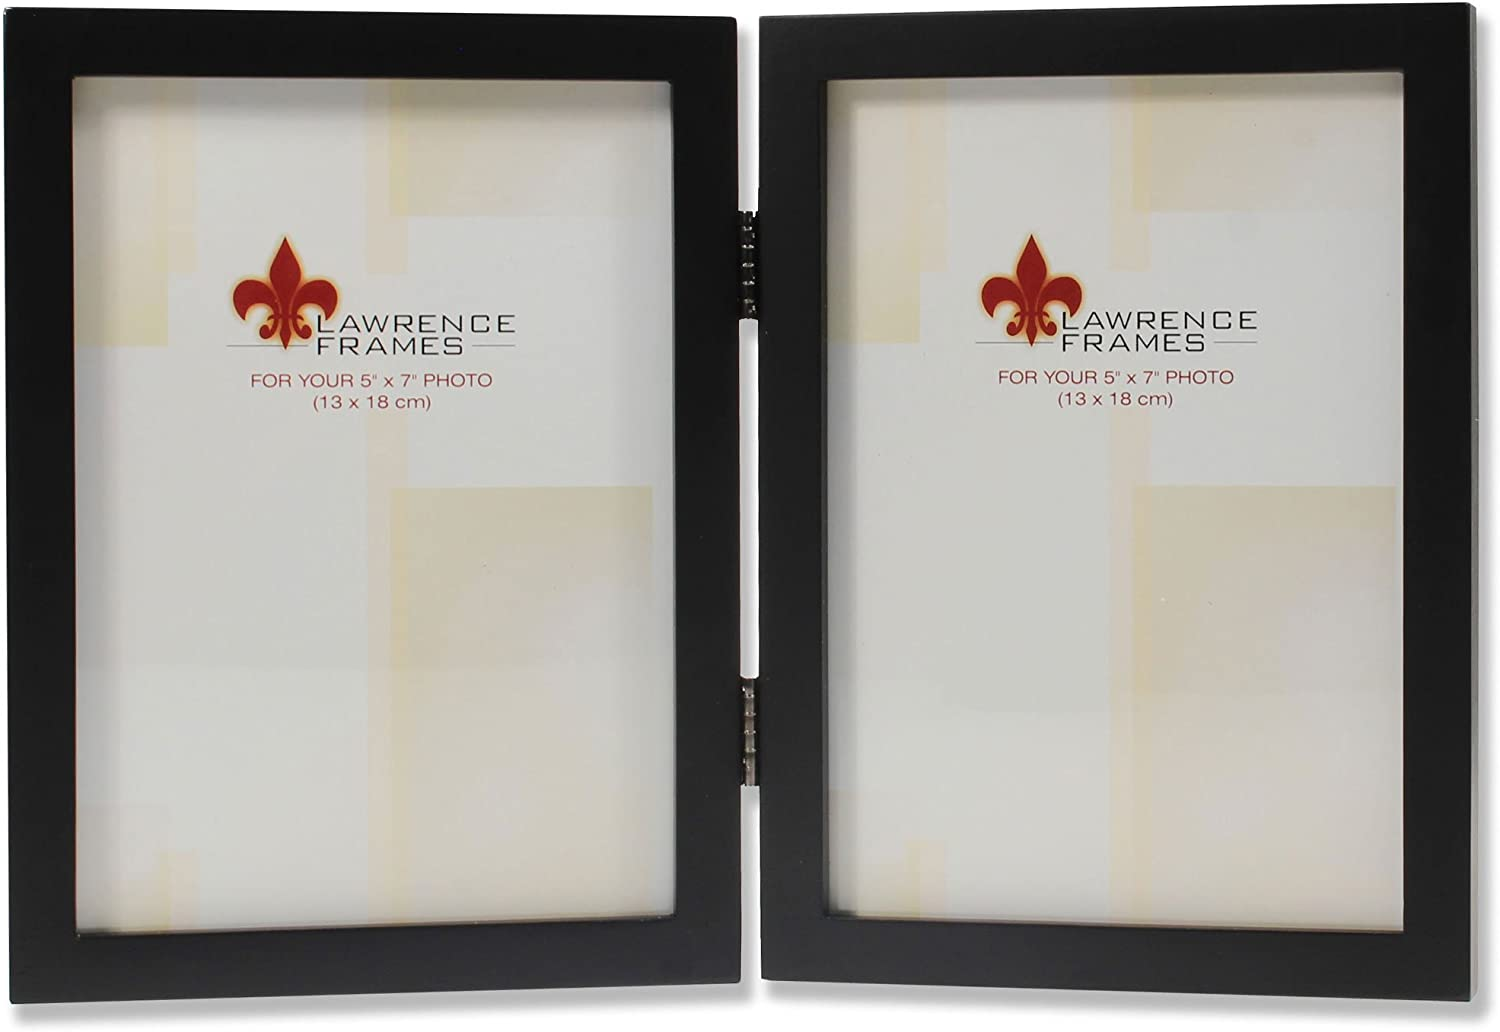 Lawrence Frames Hinged Double Black Wood Picture Frame Gallery Collection 5 By 7 Inch Professional Art Frame Kits Amazon Com